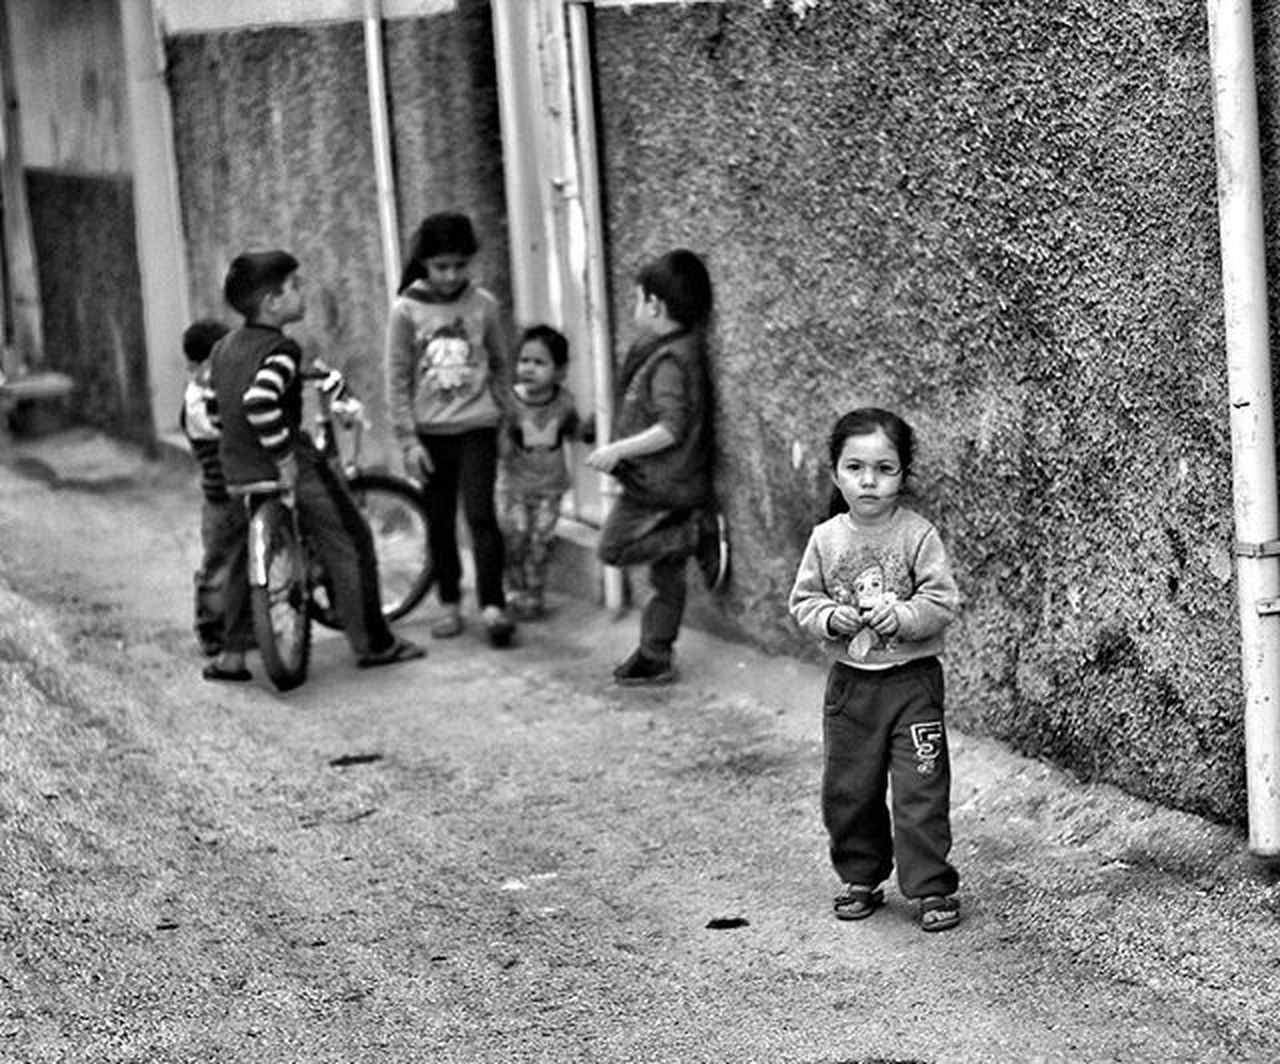 Photohobycanokkali Hatay  çocuk Child Children Childhood Amateurphotographer  Amateurphotography Antakya Photographer Canon Antakyasokakları Canonphotography Canon70d MonochromePhotography Monochrome Fotograf Siyahbeyazfoto Streetphotography MyPicture Photobycanokkali Bwphotography Photooftheday MyPhotography Photographercanokkali